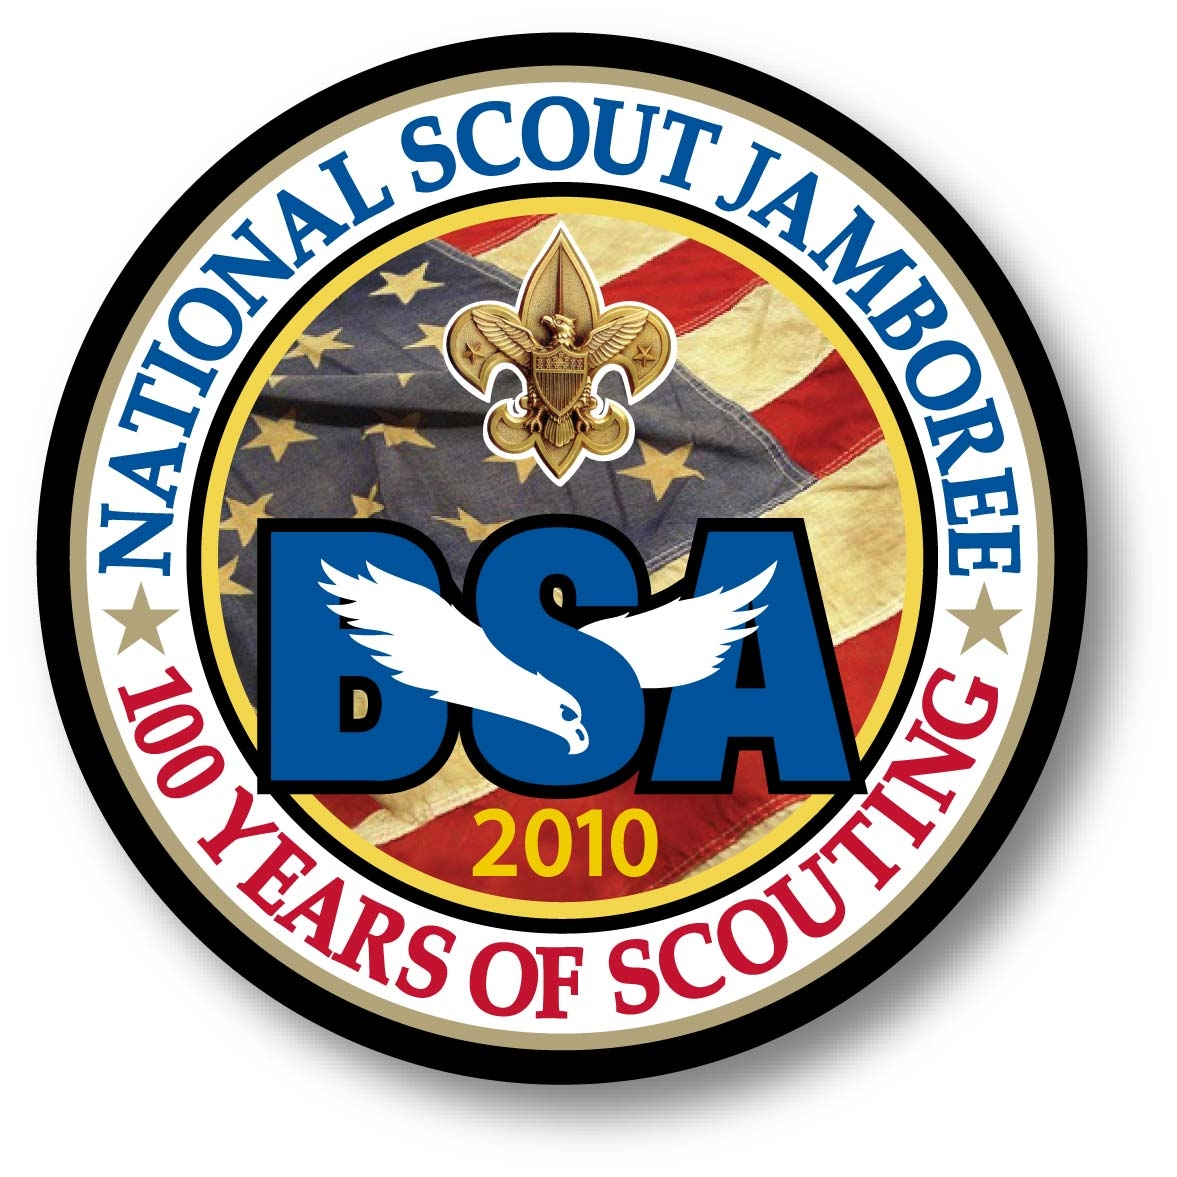 National Scout Jamboree Boy Scouts of America